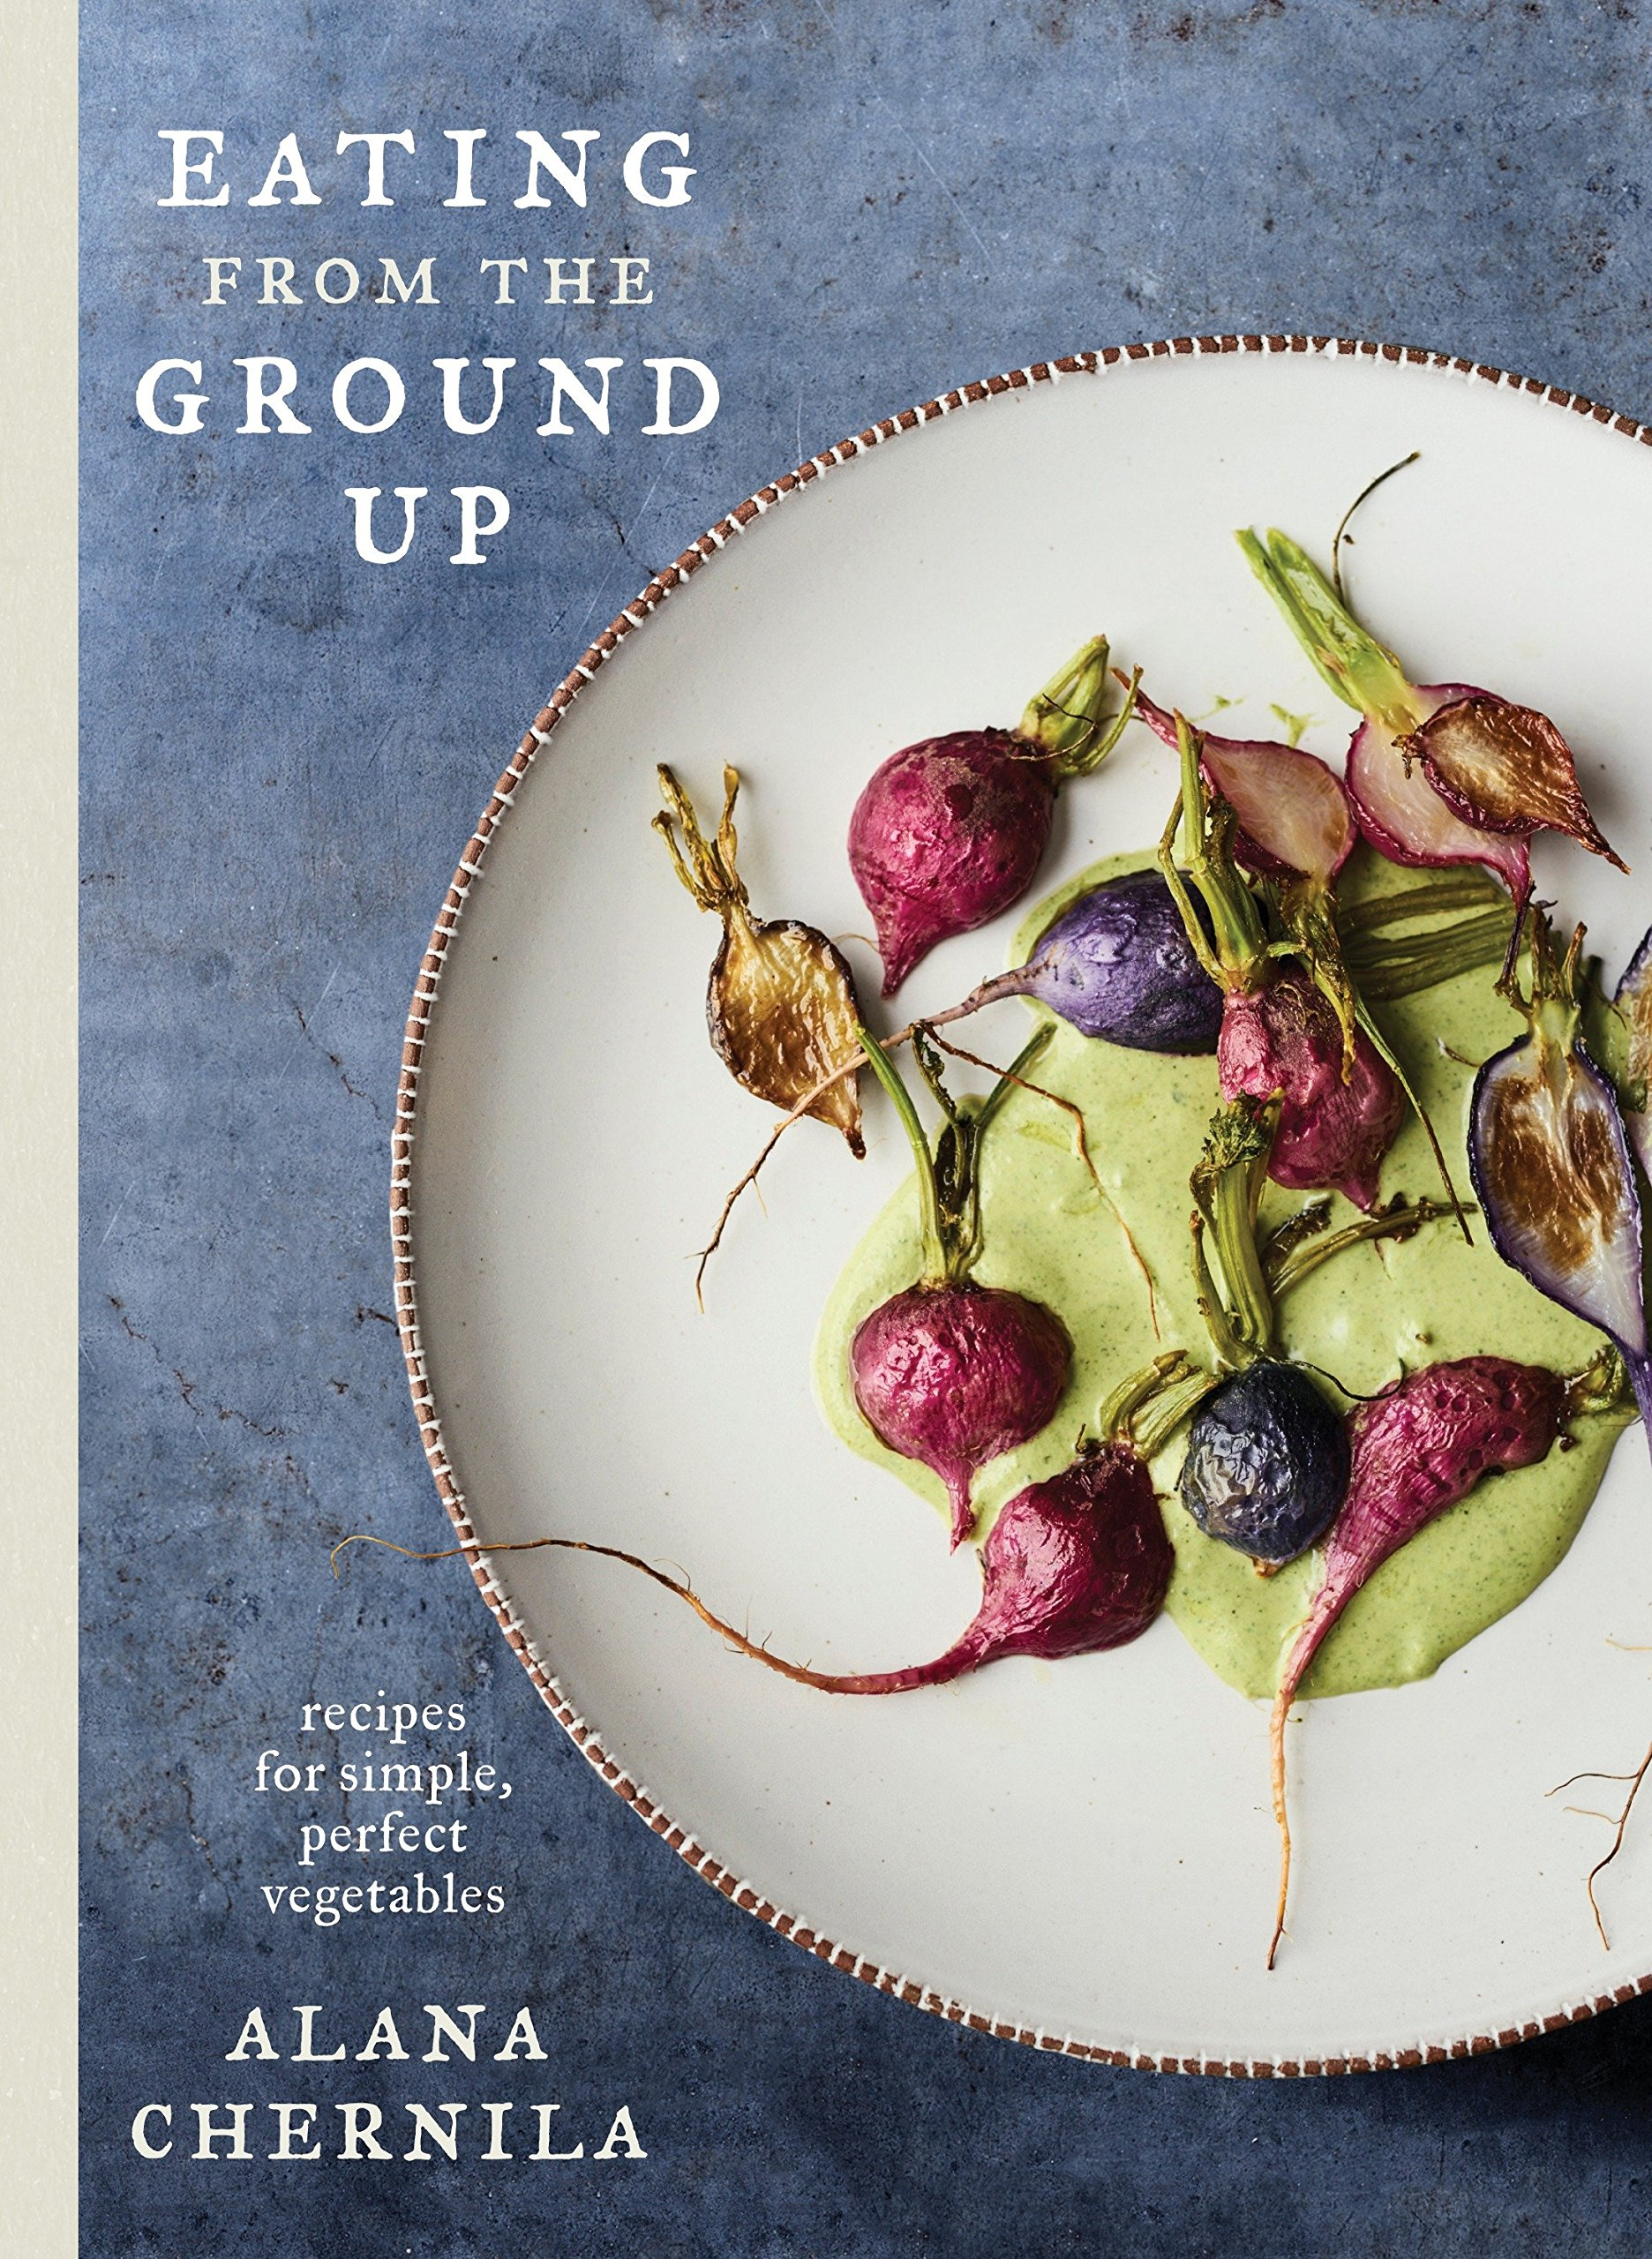 Eating from the Ground Up by Alana Chernila